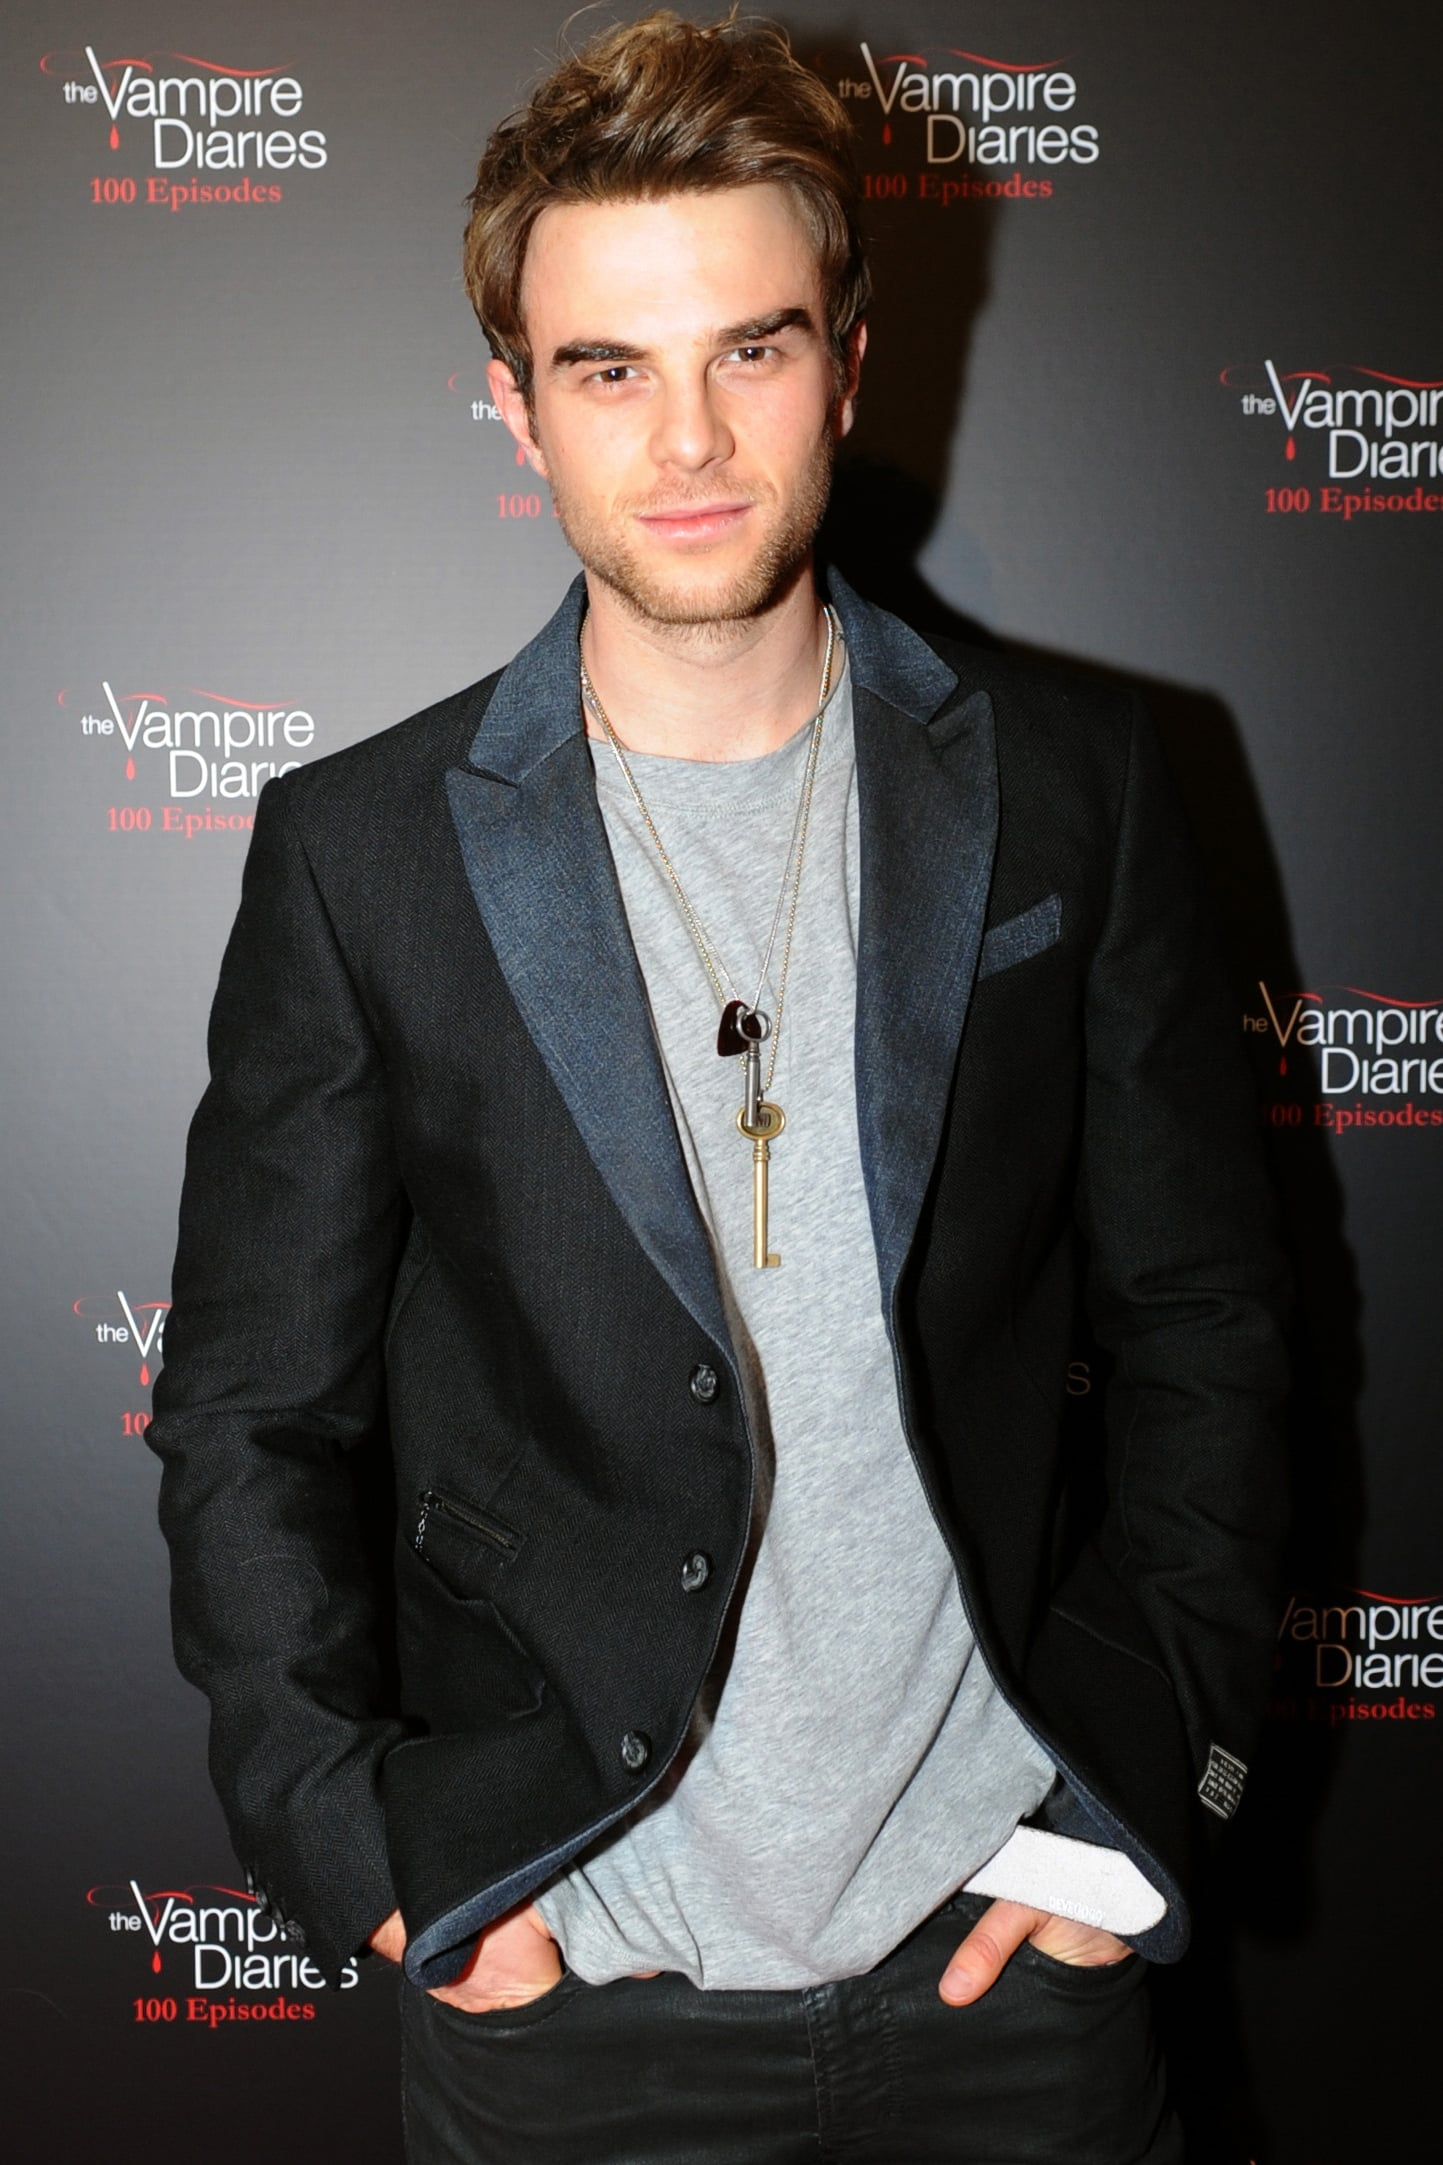 """Nathaniel Buzolic will play David Hayden, """"a shapeshifter from one of the ruling monster families who's been living as a human, having given up the monster life years ago."""" If he looks familiar, it's because he's Kol from The Vampire Diaries!"""